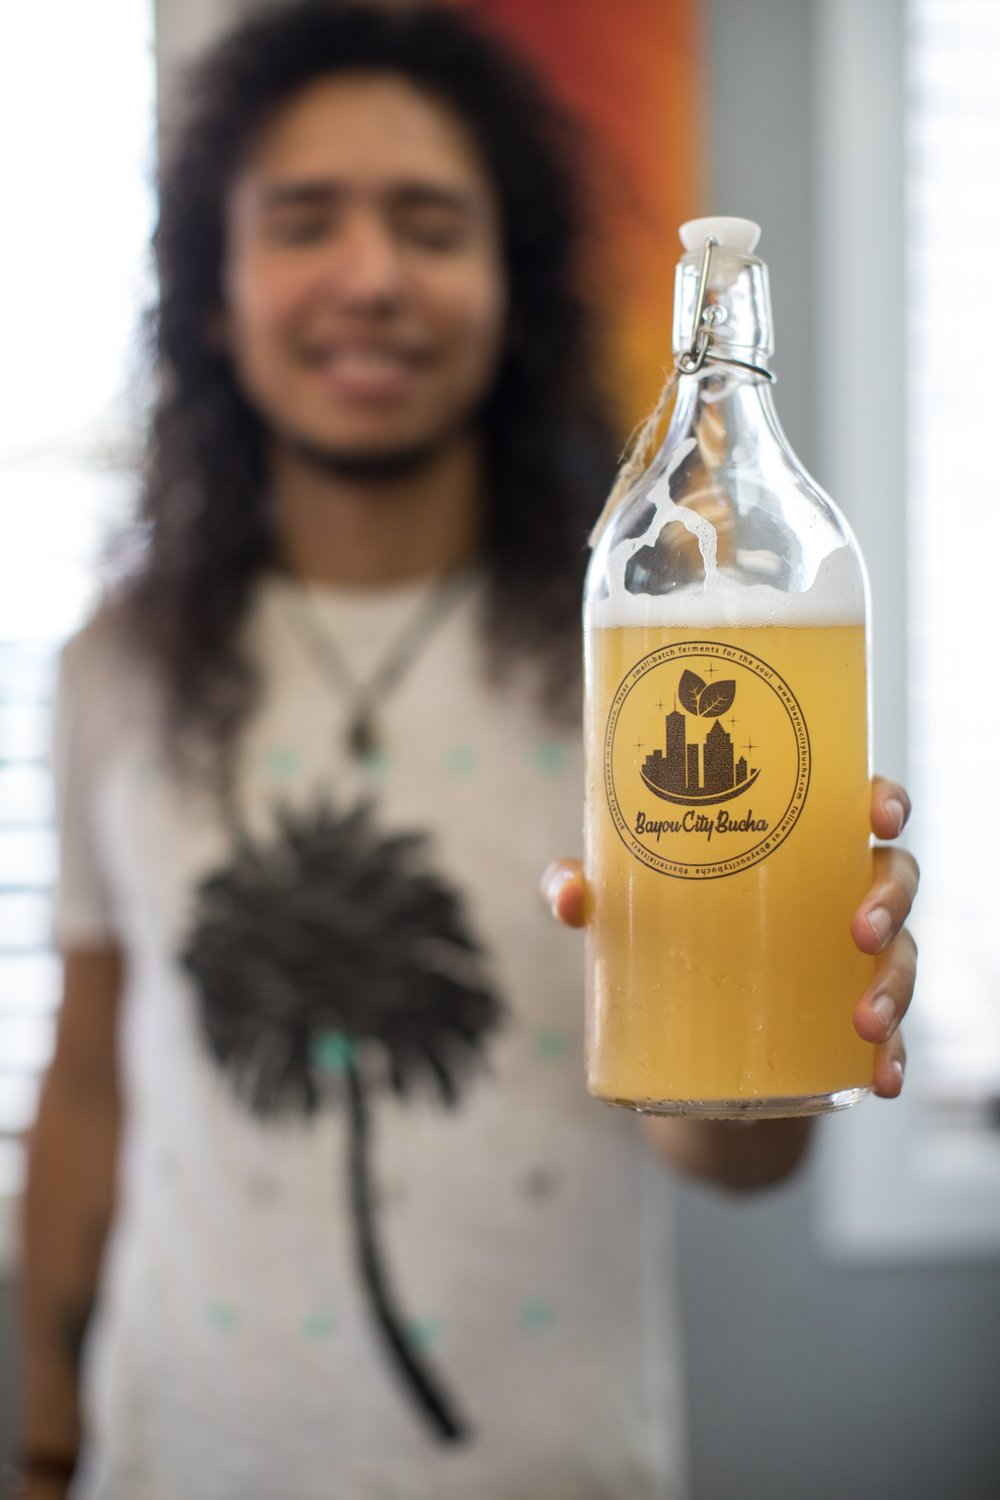 Danny with his small batch, locally brewed kombucha!